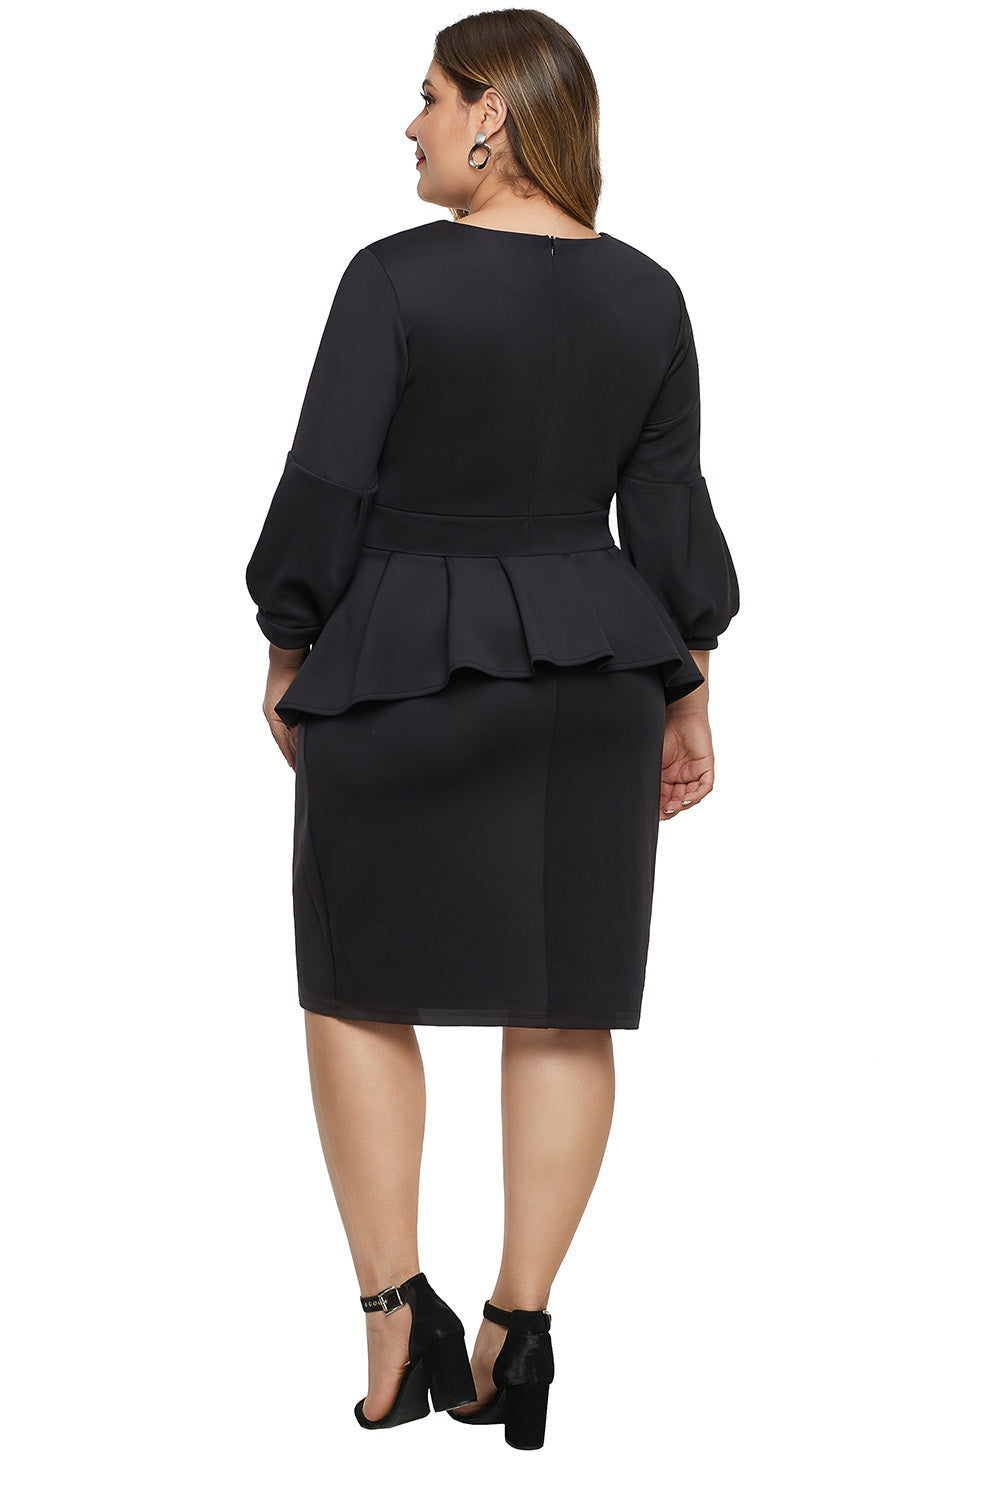 Black Bell Sleeve Plus Size Peplum Dress